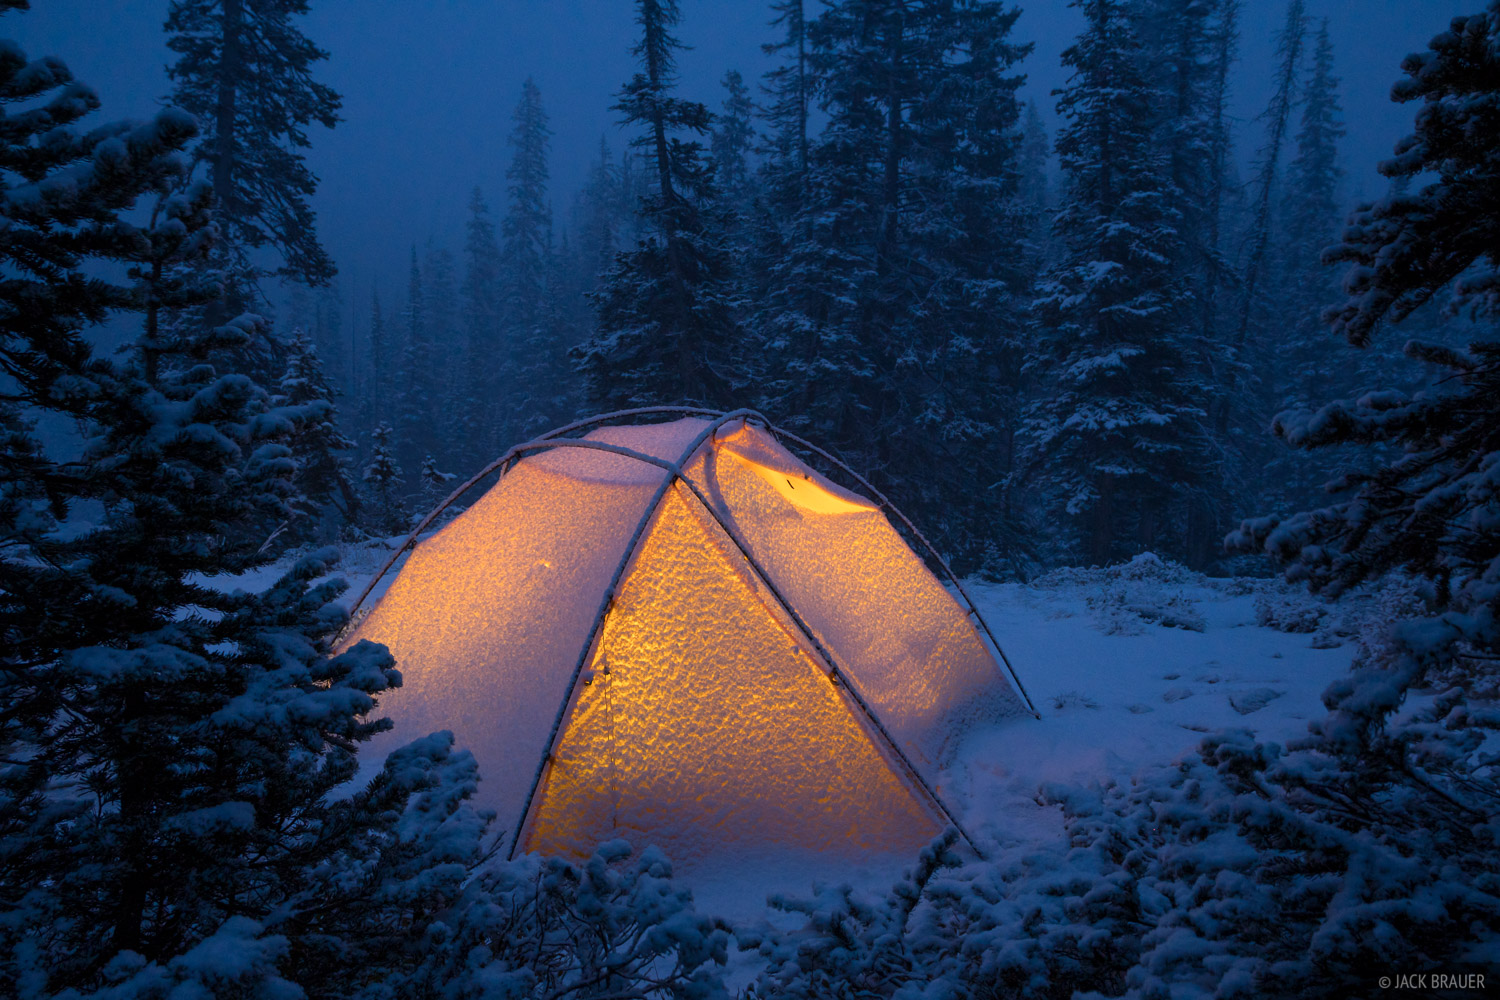 Colorado, Indian Peaks, Lone Eagle Peak, tent, Indian Peaks Wilderness, snow, lone eagle, photo